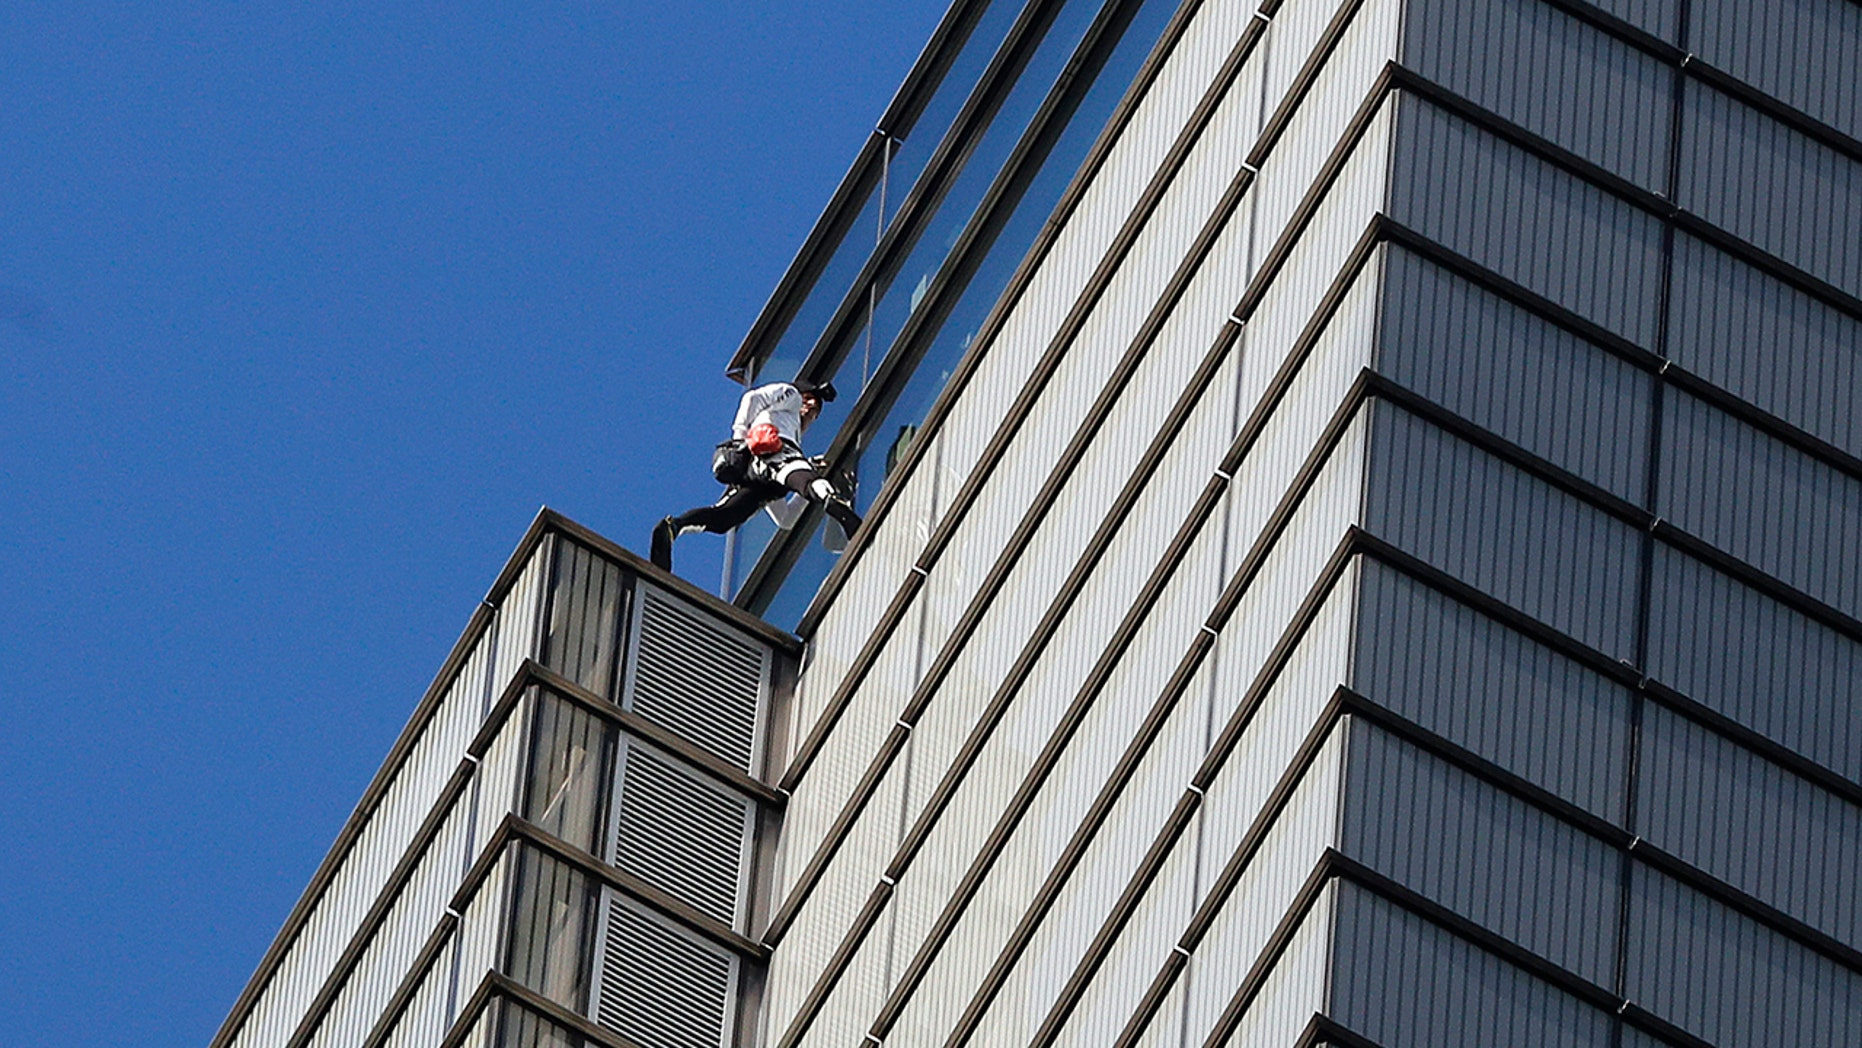 """Alain Robert, an urban climber dubbed the """"French Spider-Man,"""" completes his climb of the outside of Heron Tower building in the City of London, Thursday, Oct. 25, 2018."""